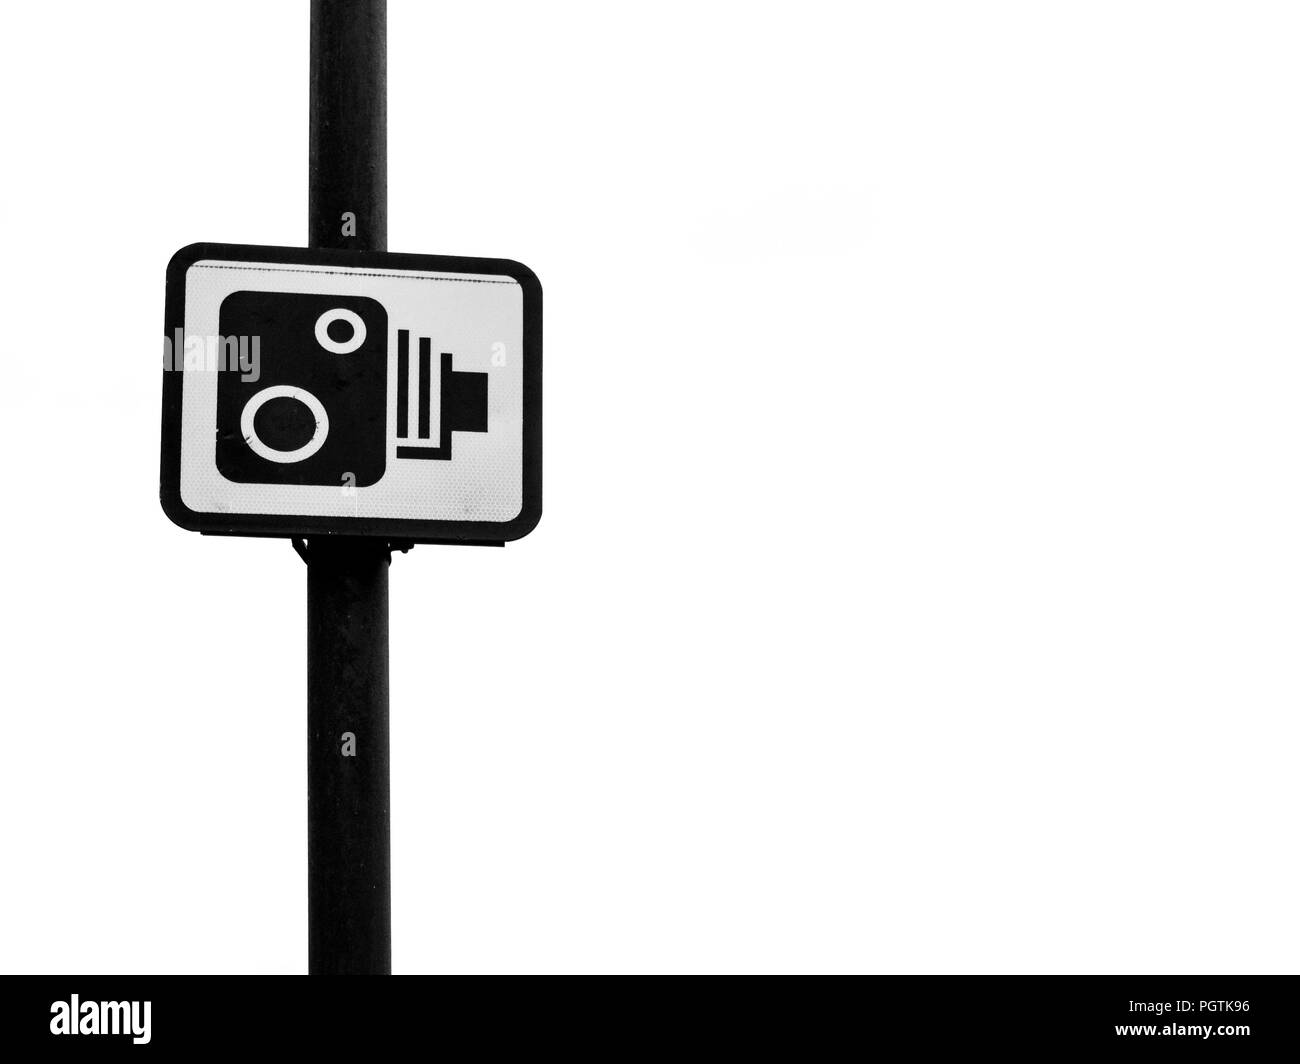 View of a Speed Camera Warning Sign on a Welsh Town Street Stock Photo